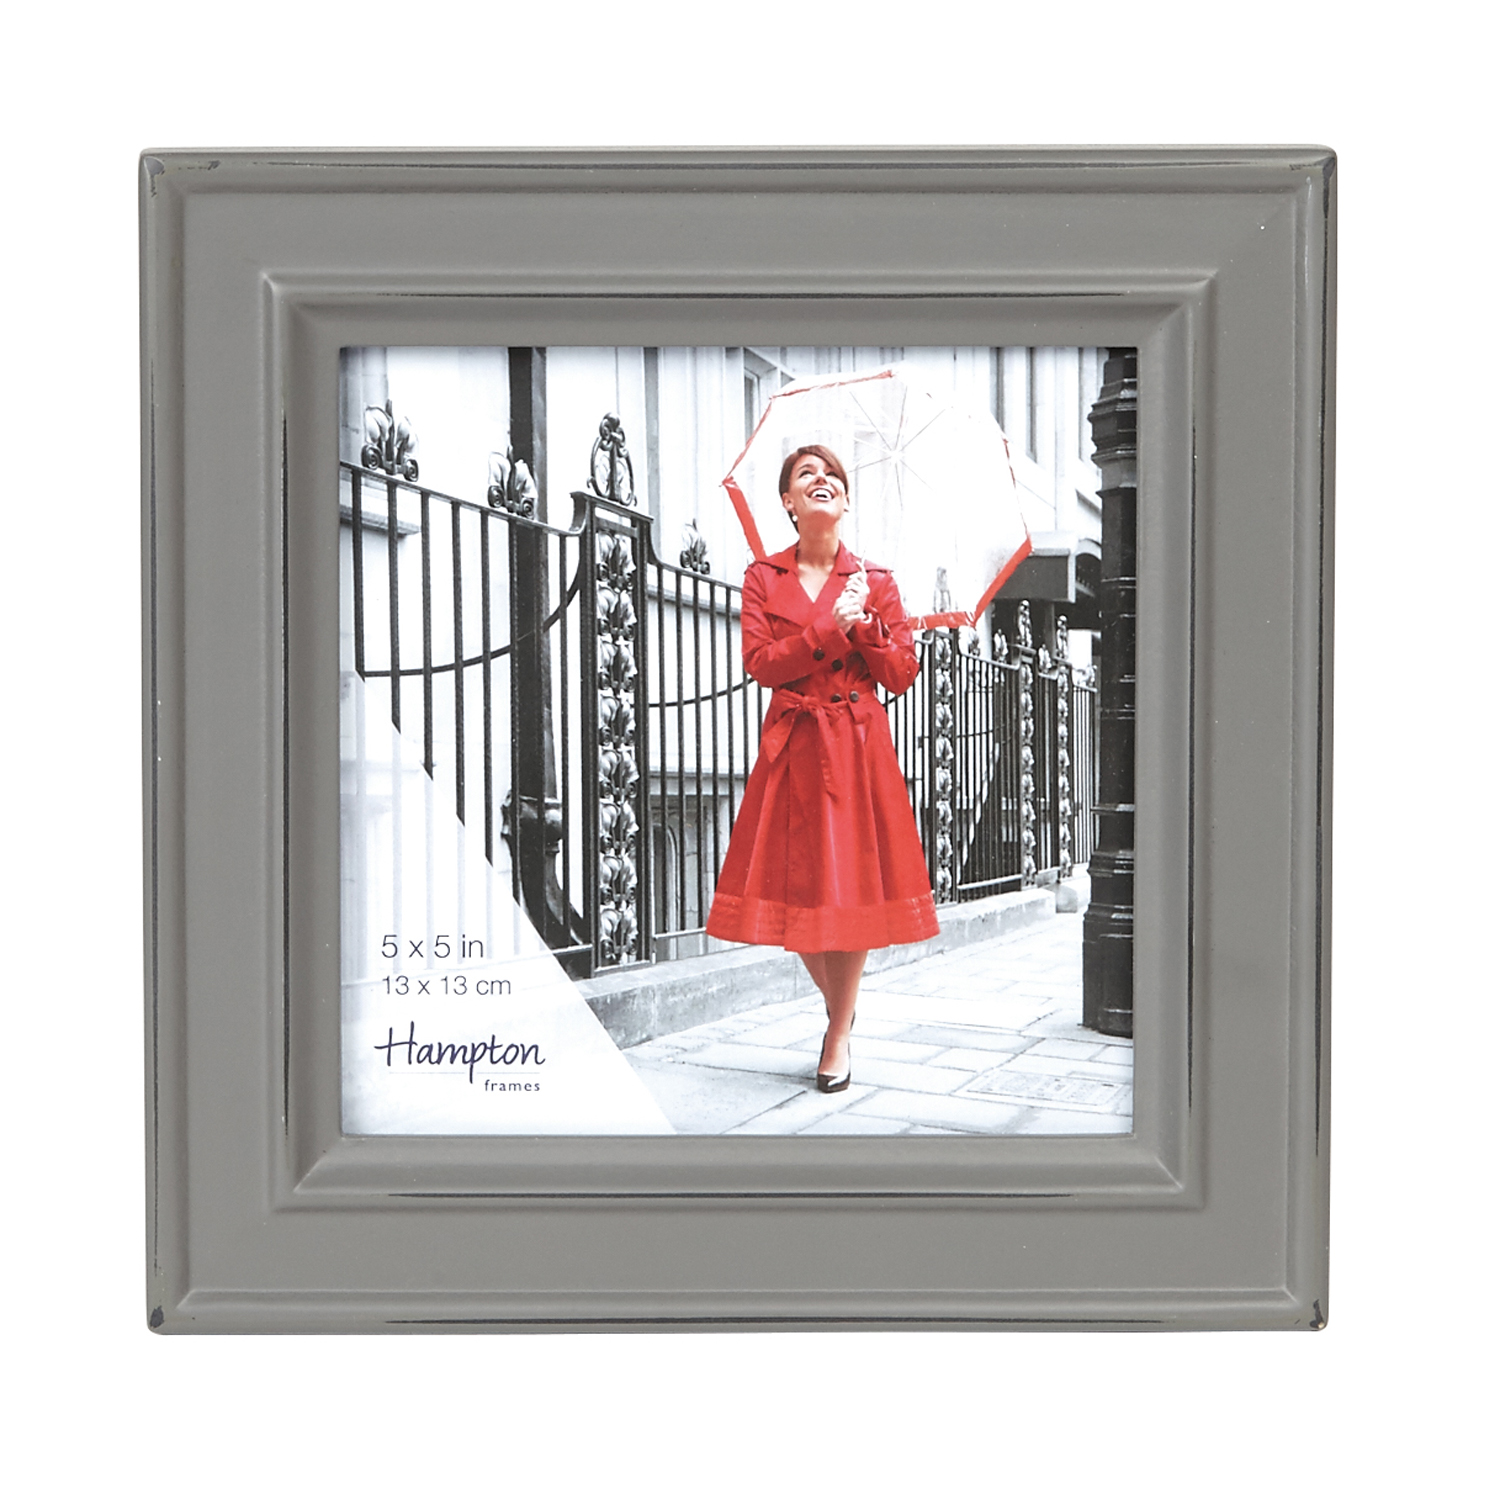 Hampton Frames Paloma 5x5 Photo Frame, Stone Grey | Leekes